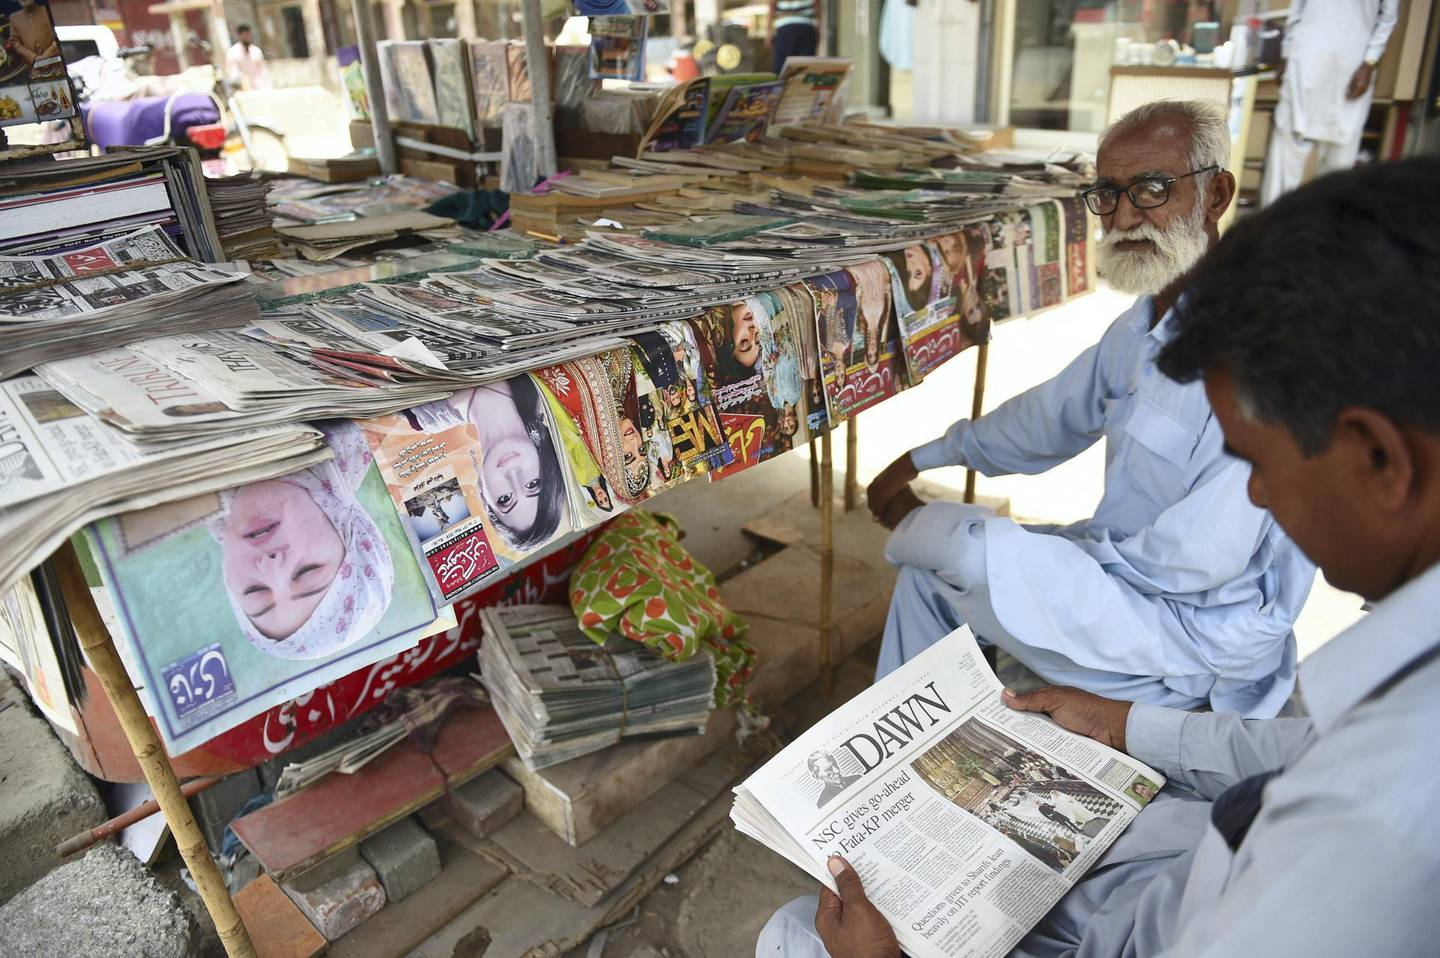 A Pakistan man reads a copy of the Dawn English-language newspaper at a newspaper stall in Karachi on May 20, 2018.  International media watchdog Reporters Without Borders (RSF) has condemned the disruption in distribution of Pakistan's oldest newspaper Dawn after it published an interview suggesting that Pakistani militants were behind the 2008 Mumbai attacks. / AFP PHOTO / RIZWAN TABASSUM